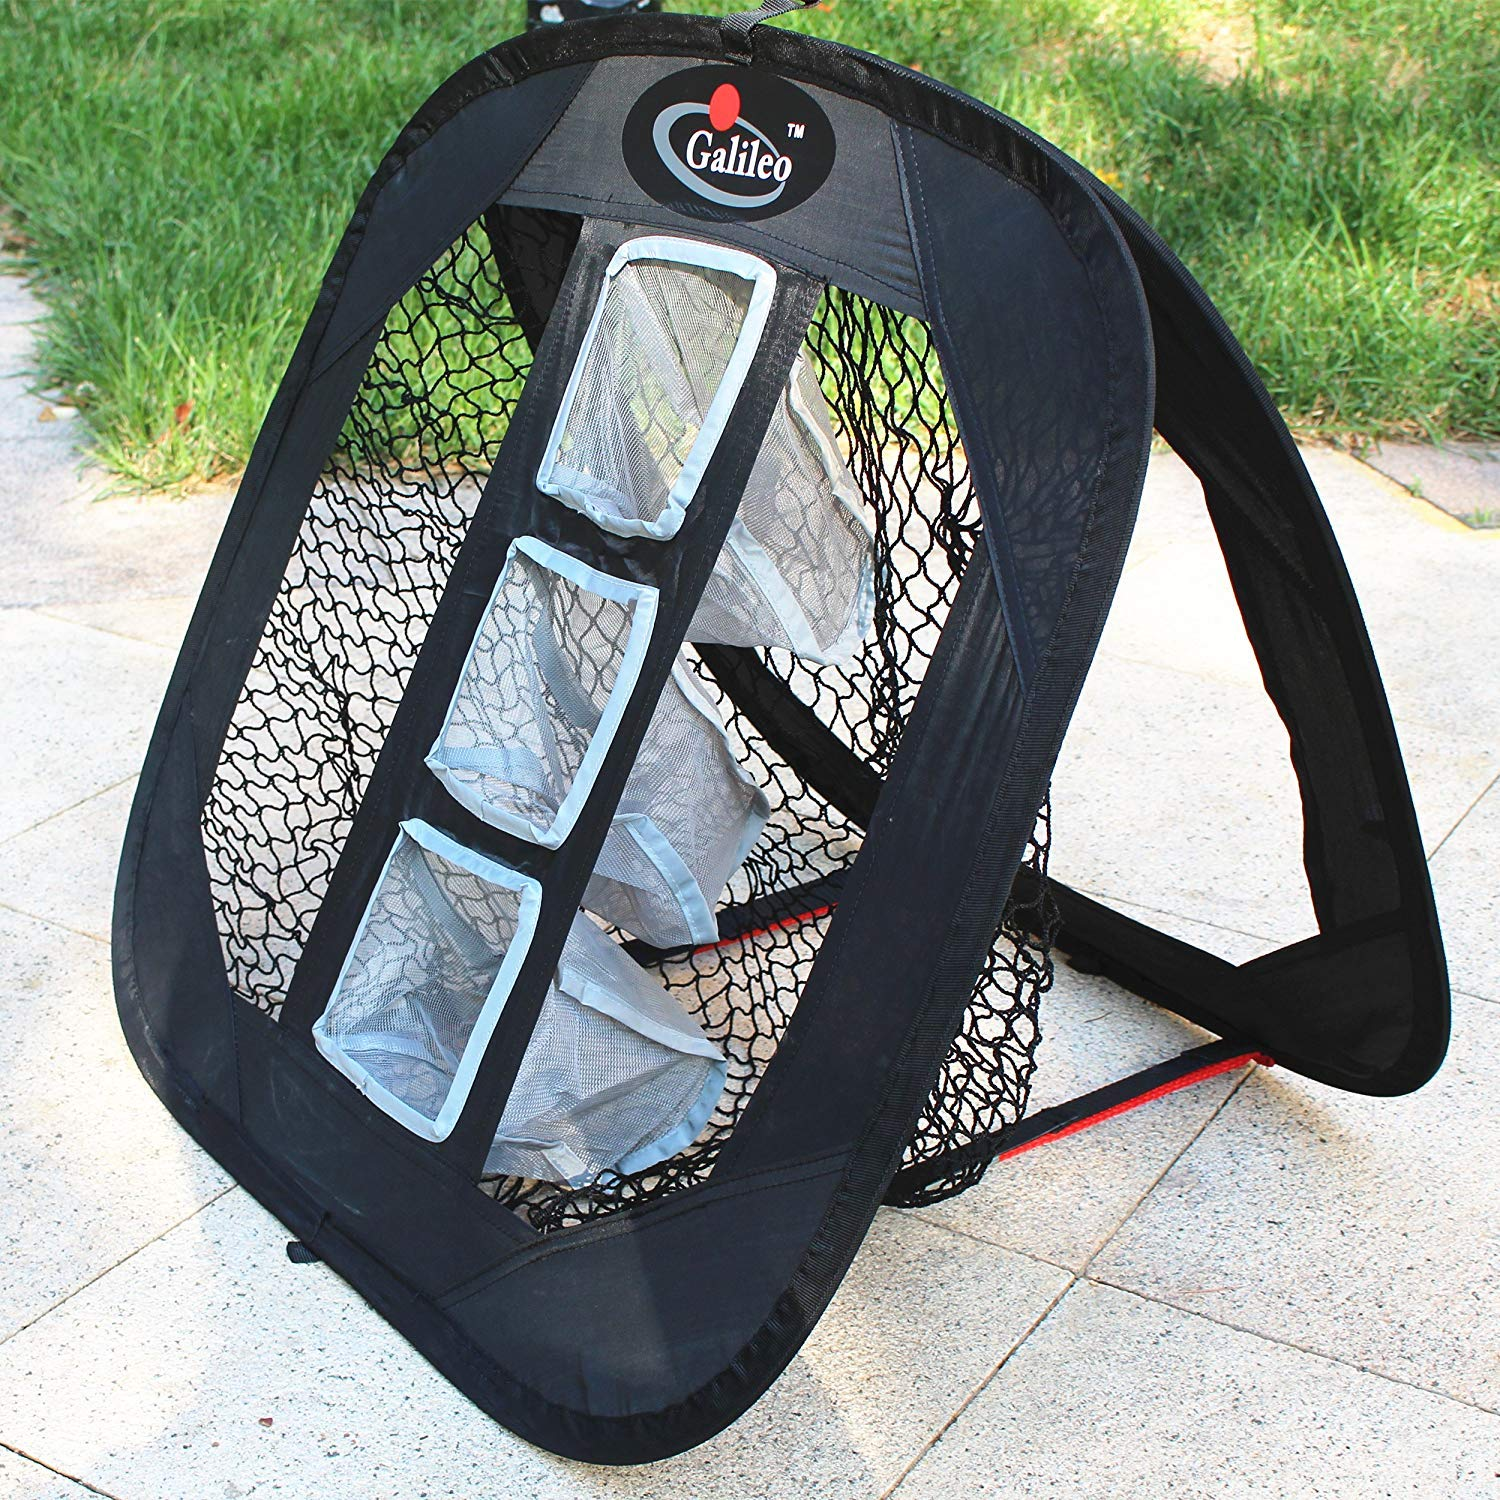 Galileo Golf Chipping Net Practice Driving Training Nets with Target Square Hitting Aid